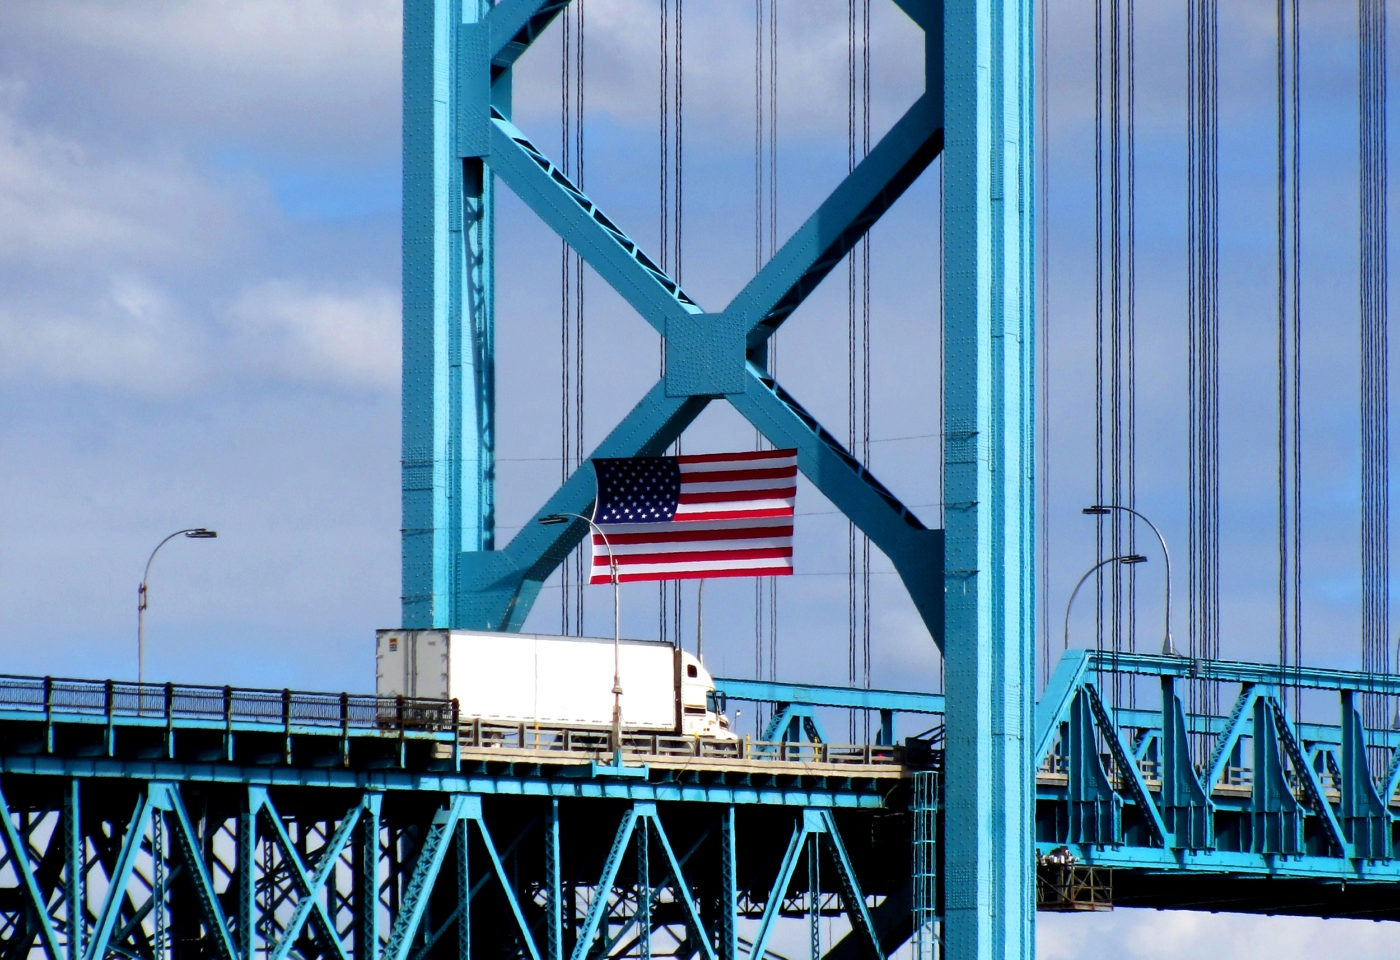 Transport truck crossing the Ambassador Bridge between Detroit, Michigan, United States, and Windsor, Ontario, Canada